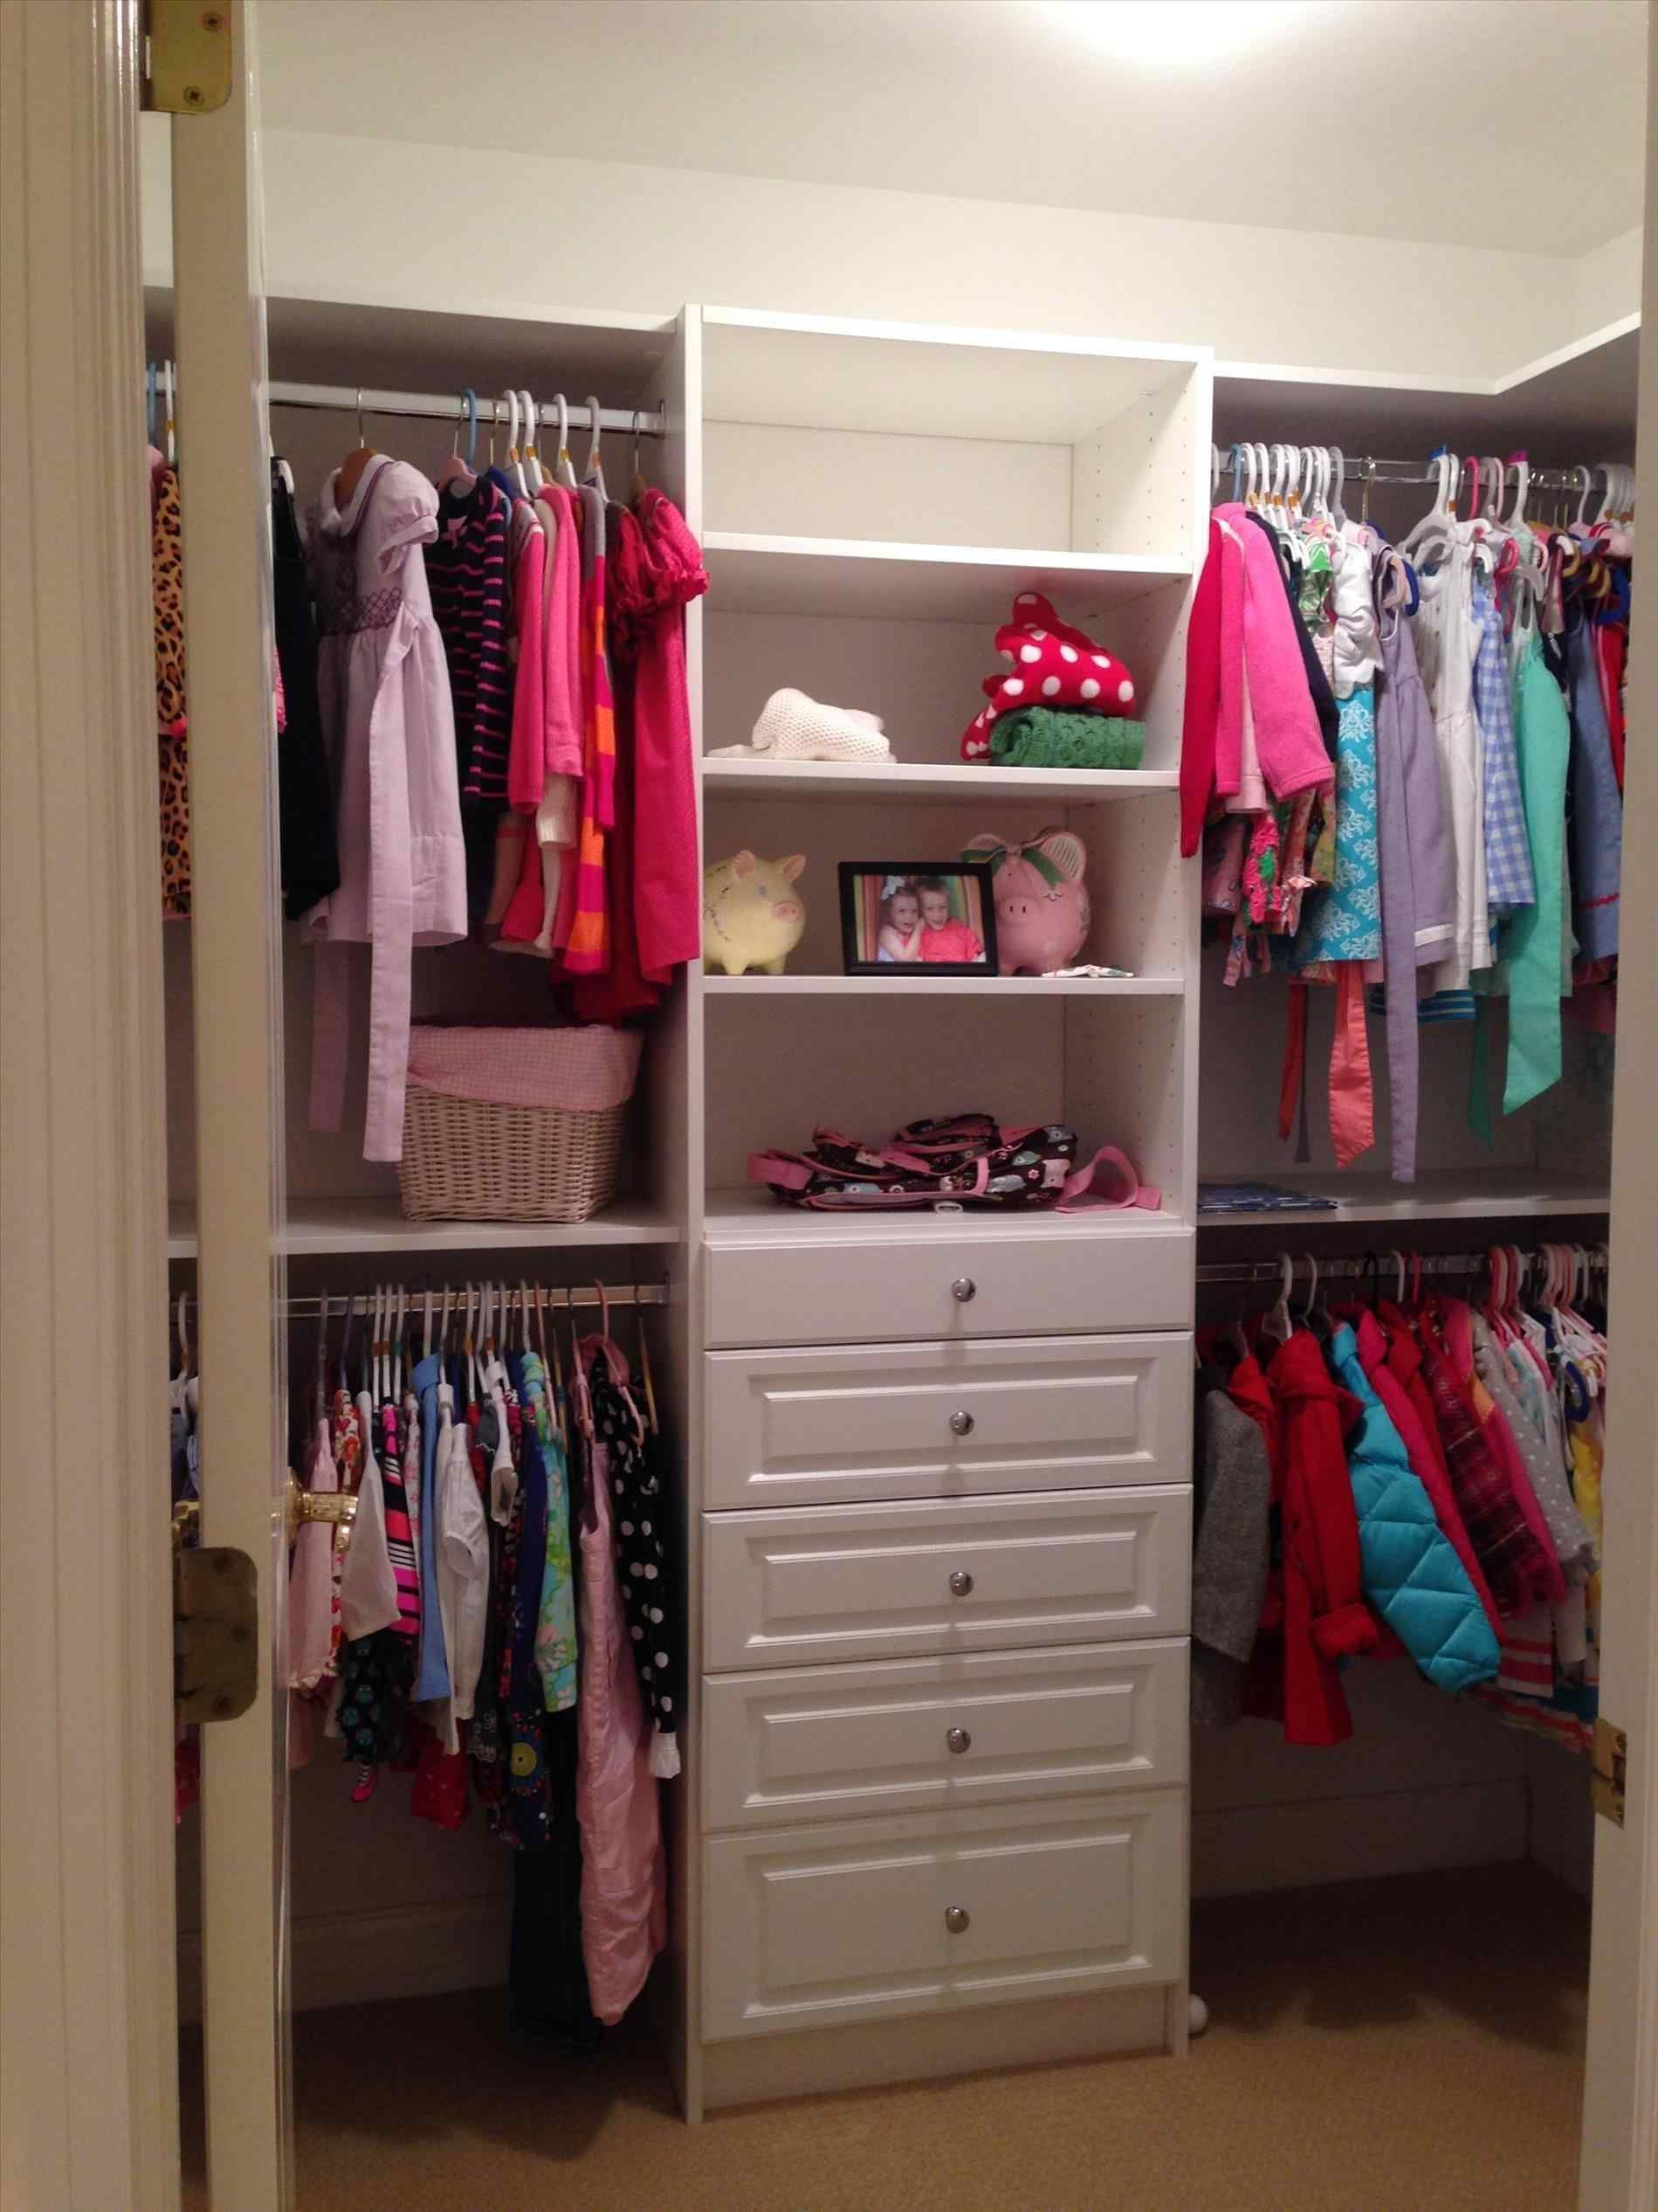 Closet Ideas For Teenage Girls Clothes Closet Design Closet Small Bedroom Closet Designs